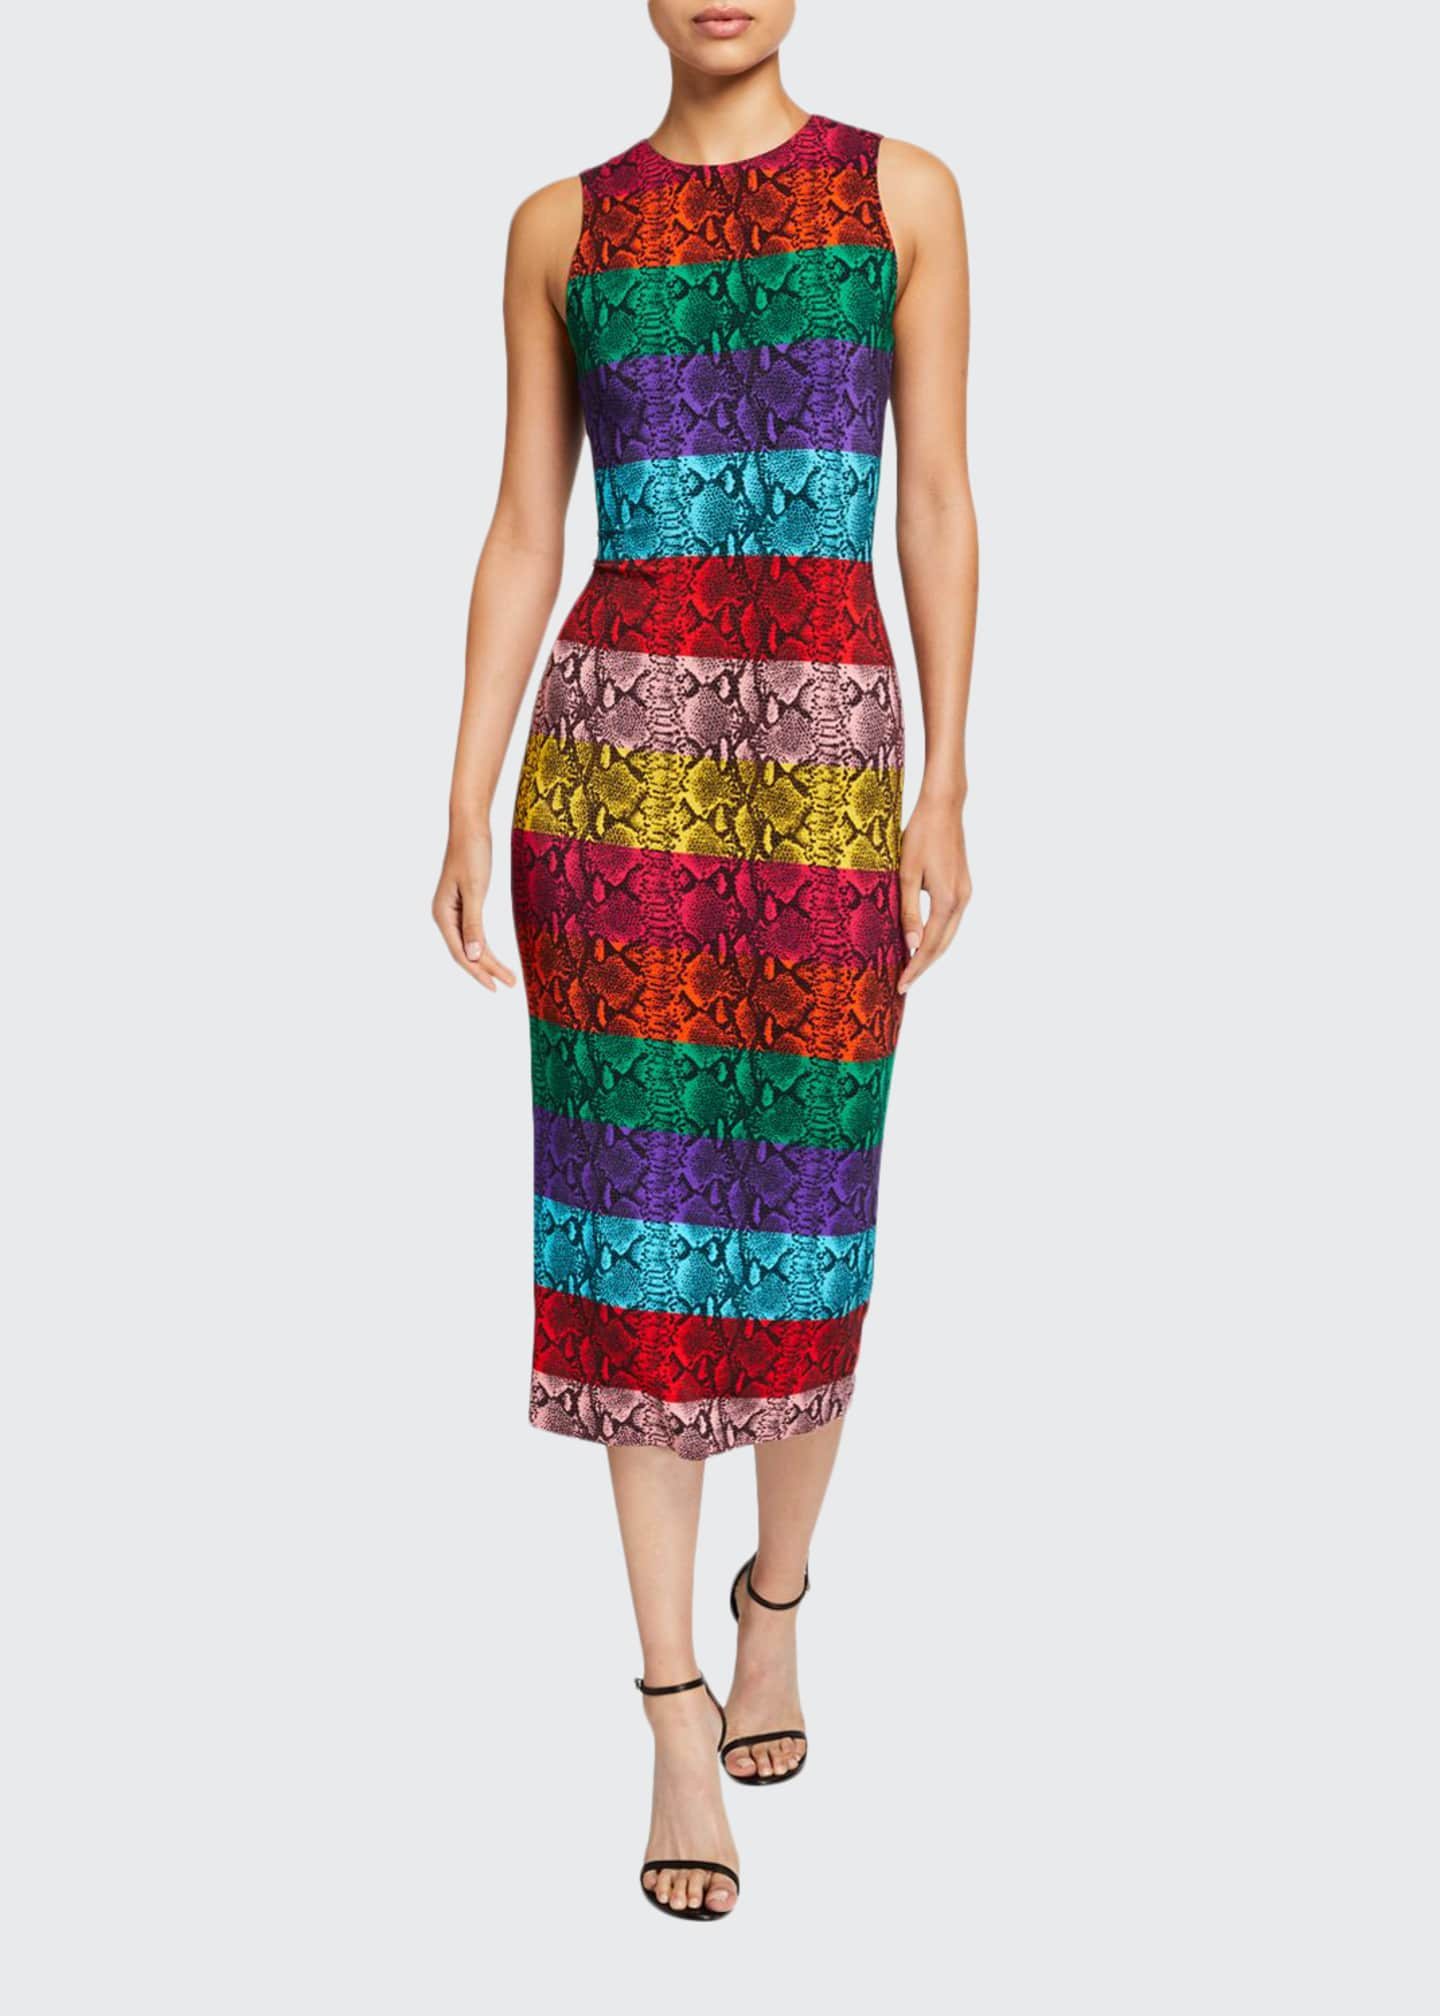 Alice + Olivia Delora Fitted Sleeveless Crewneck Dress